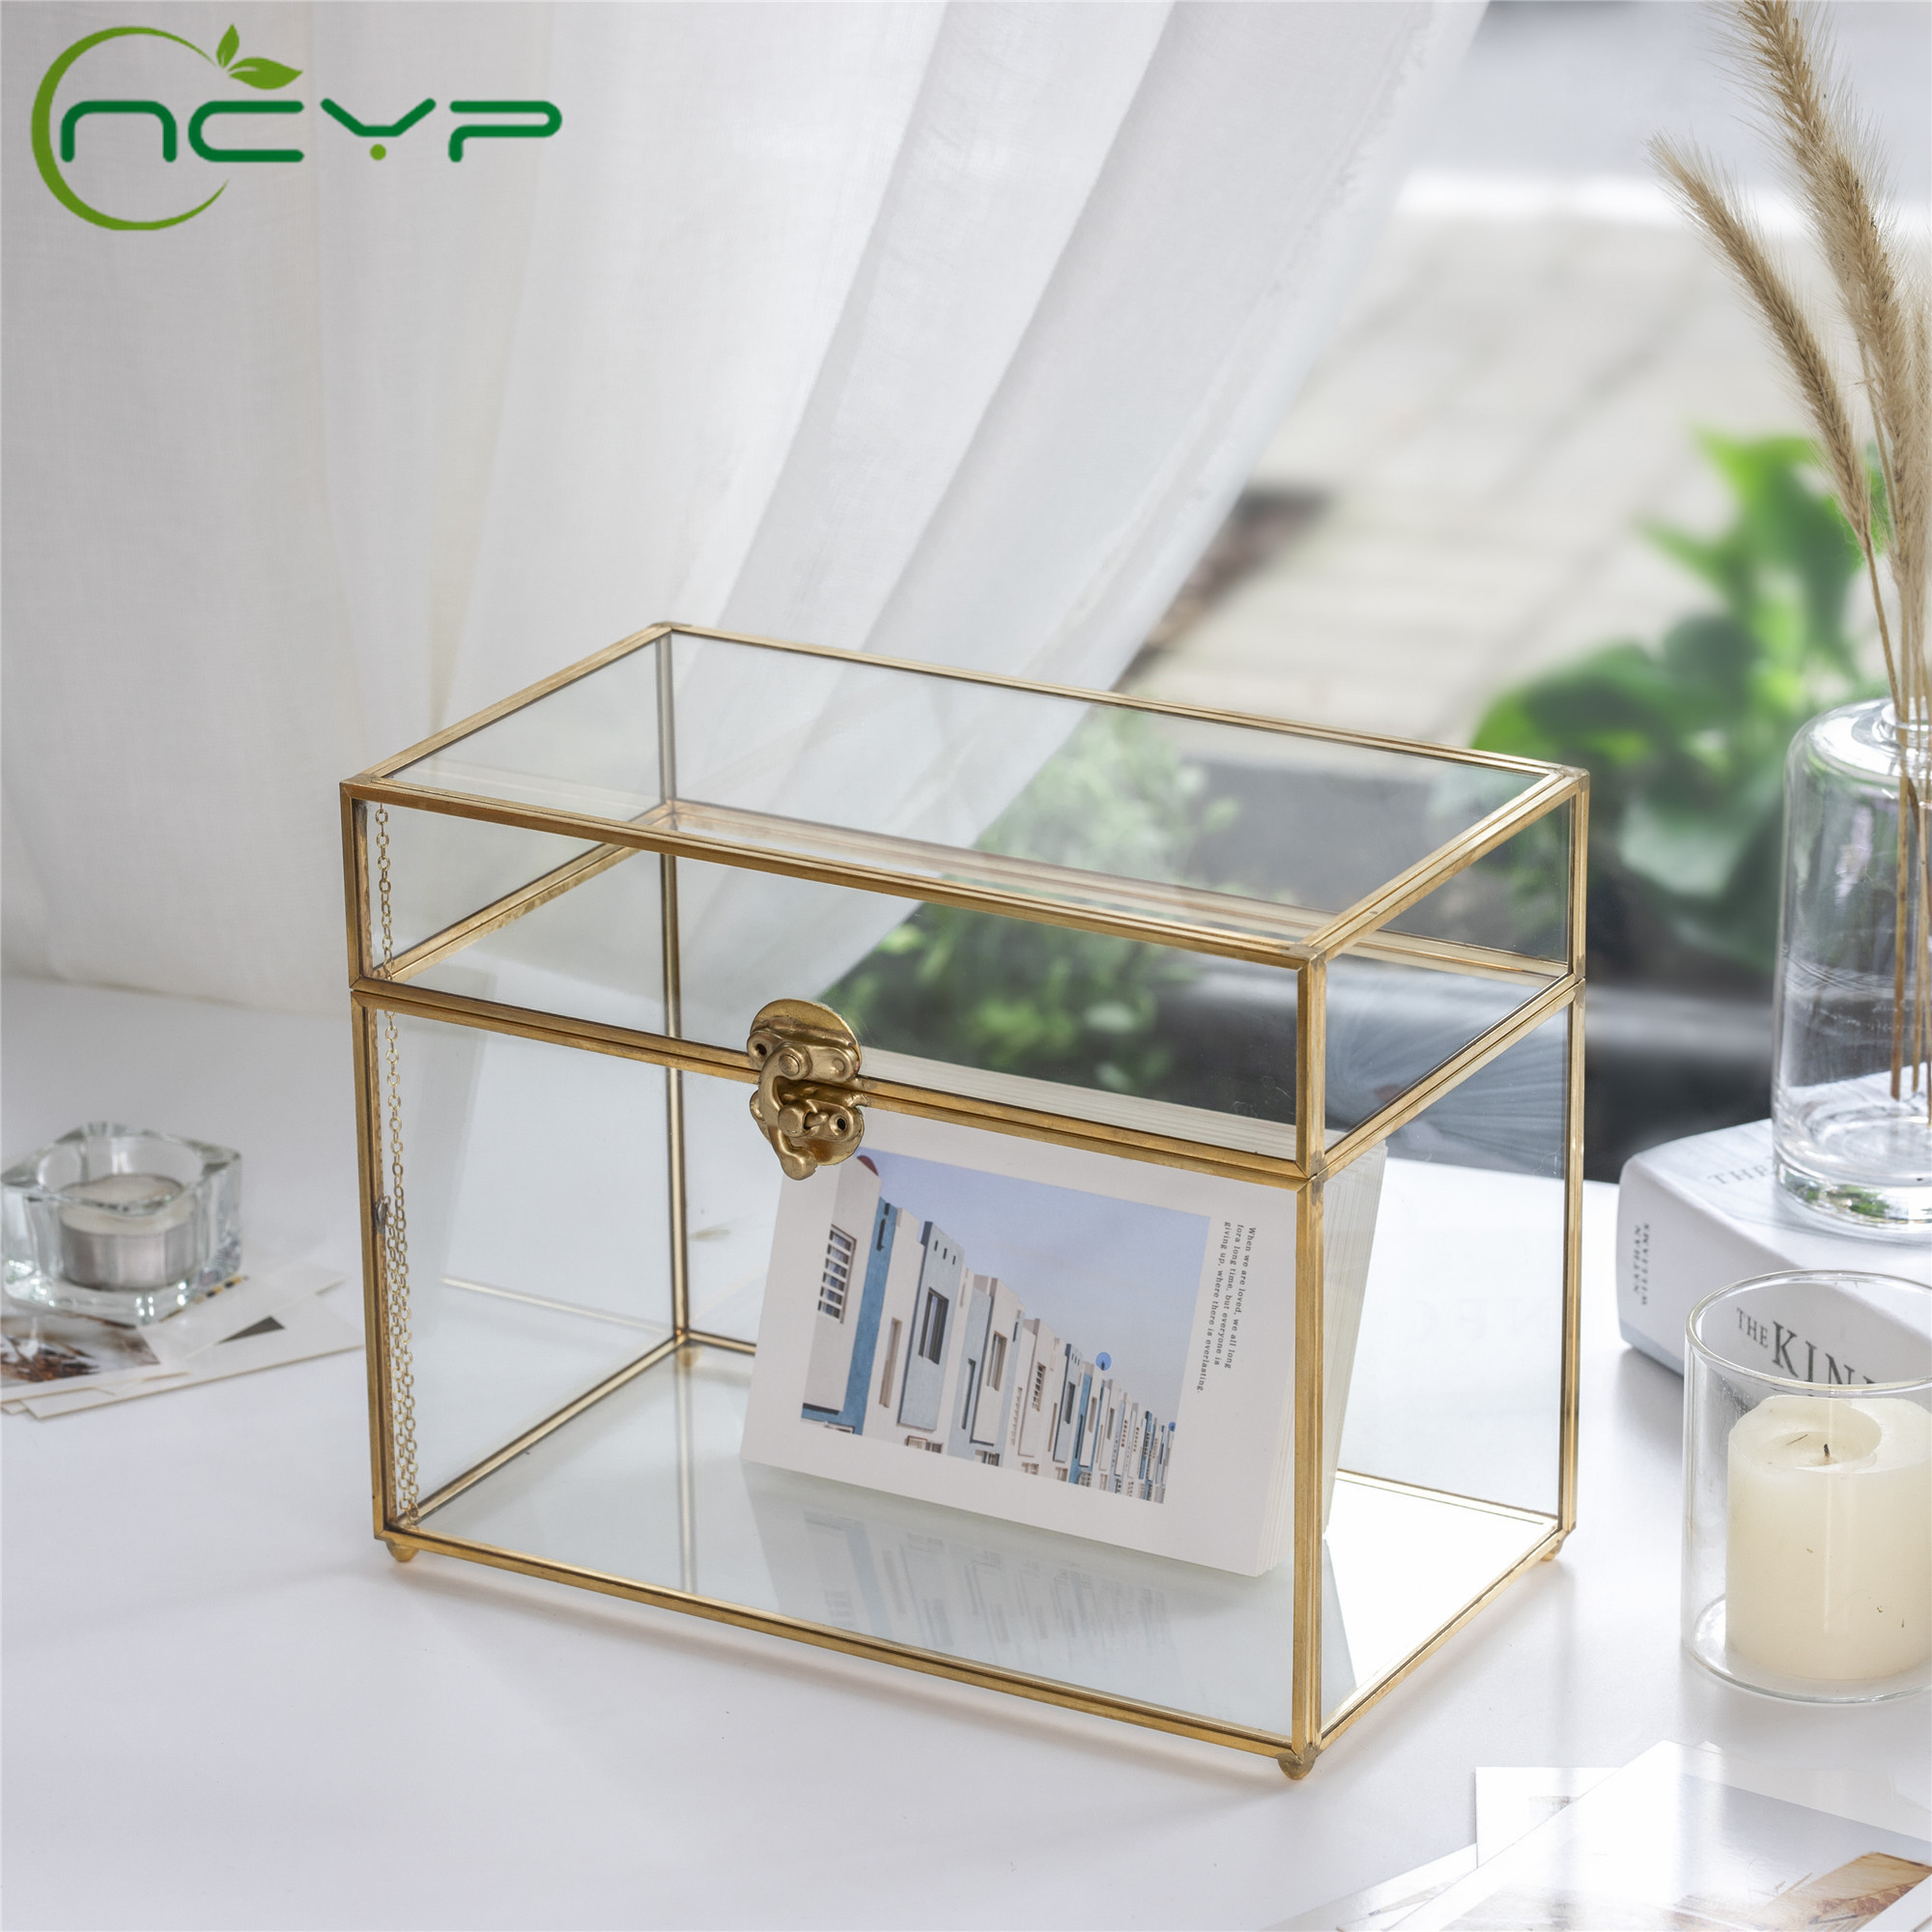 NCYP Gold Rectangle Wedding Glass Card Box Gift Organizer Terrarium Containers Celebration Home Party Wedding Card Box